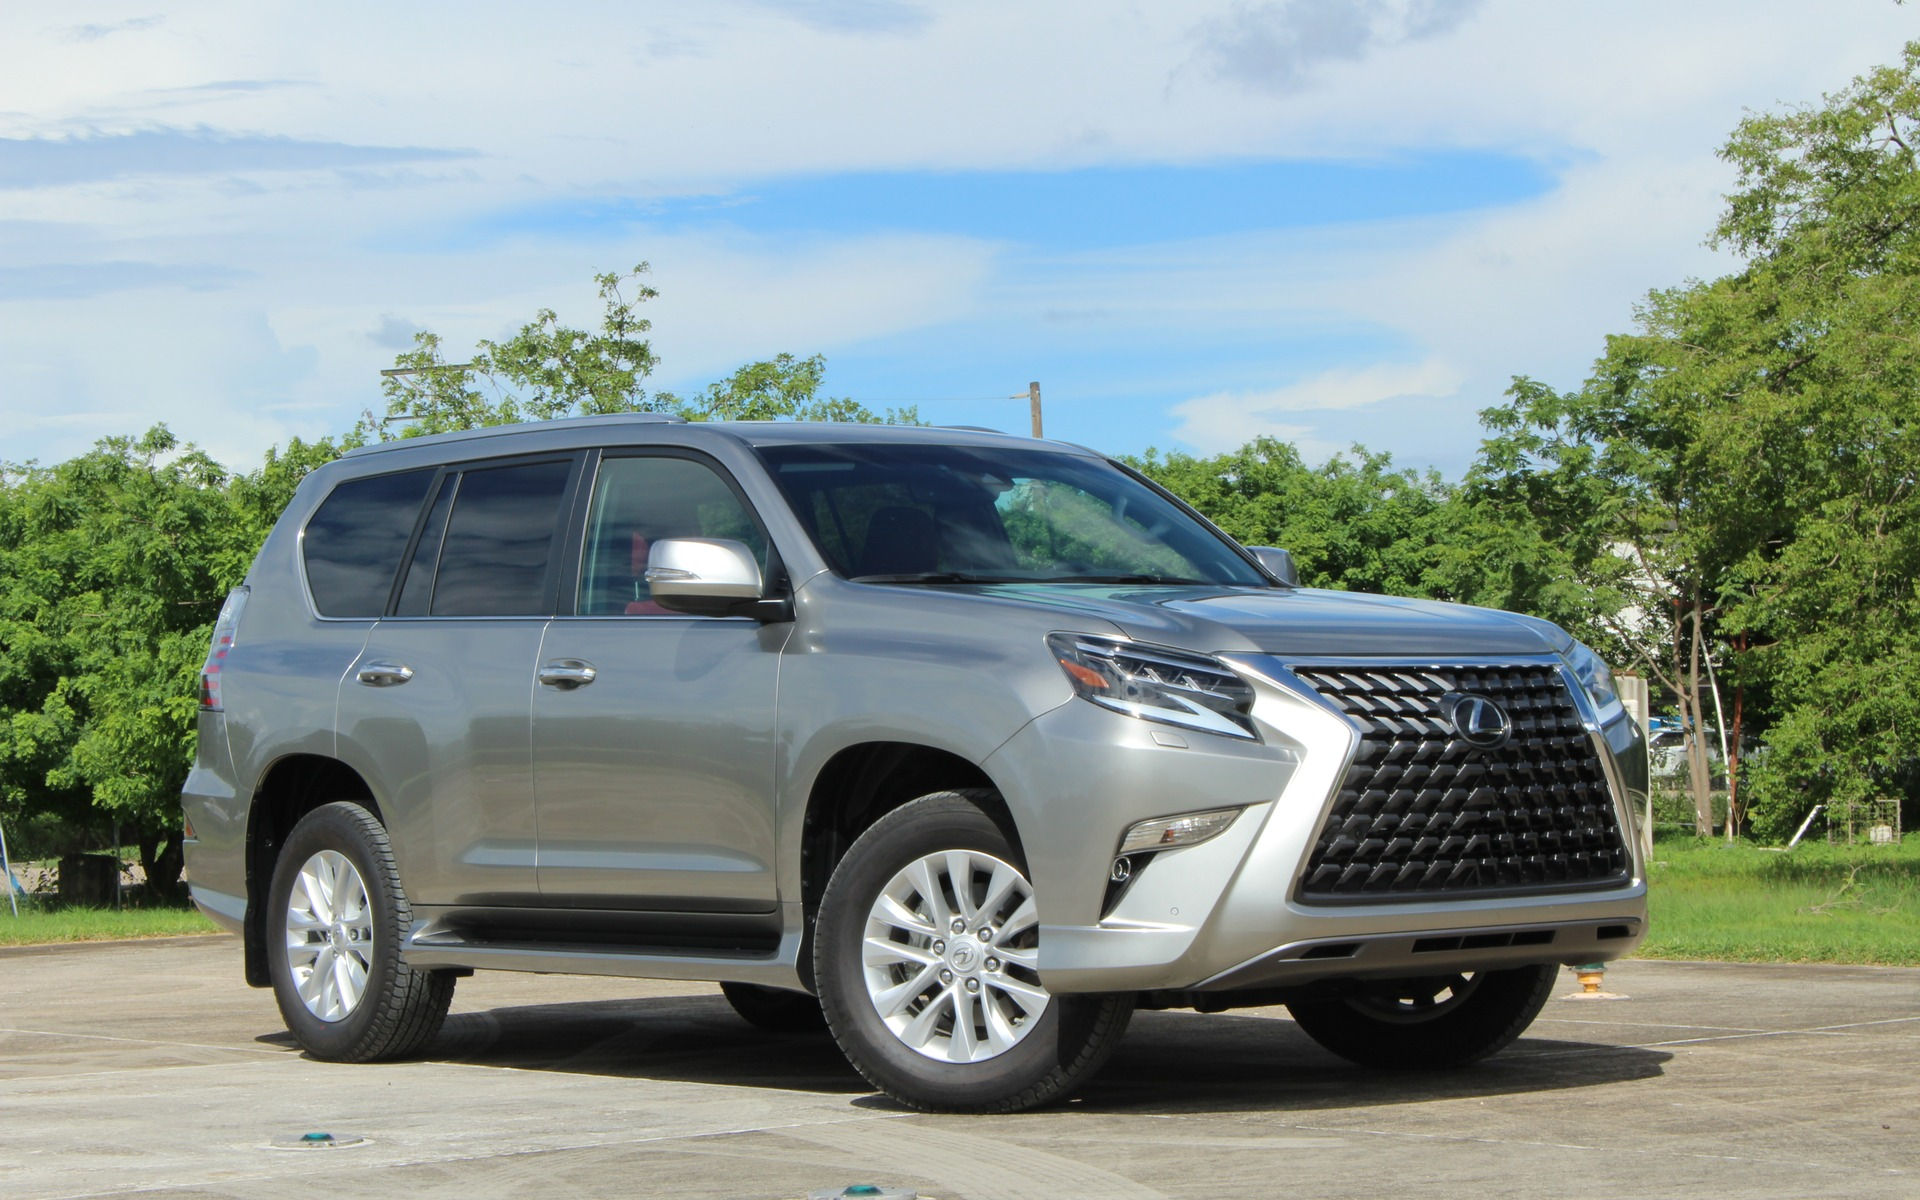 2020 Lexus GX: What Retirement? - The Car Guide